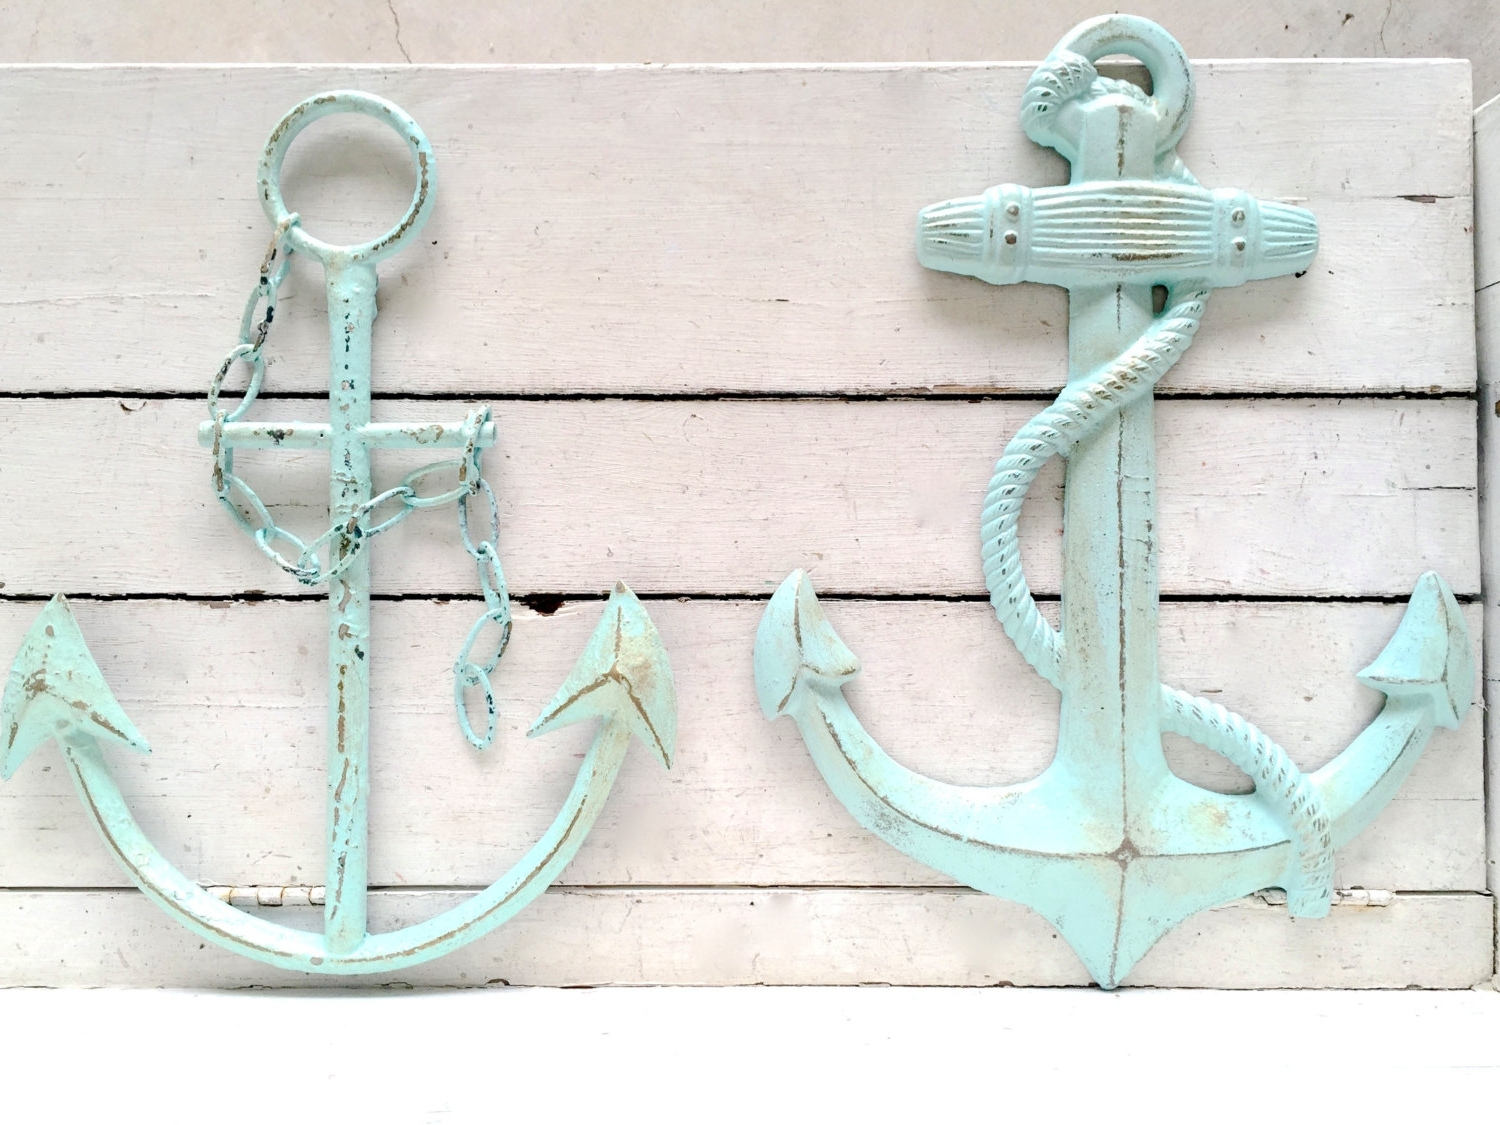 Large Anchor Wall Decor Image : Large Anchor Wall Decor In Drywall Throughout Preferred Anchor Wall Art (View 8 of 15)